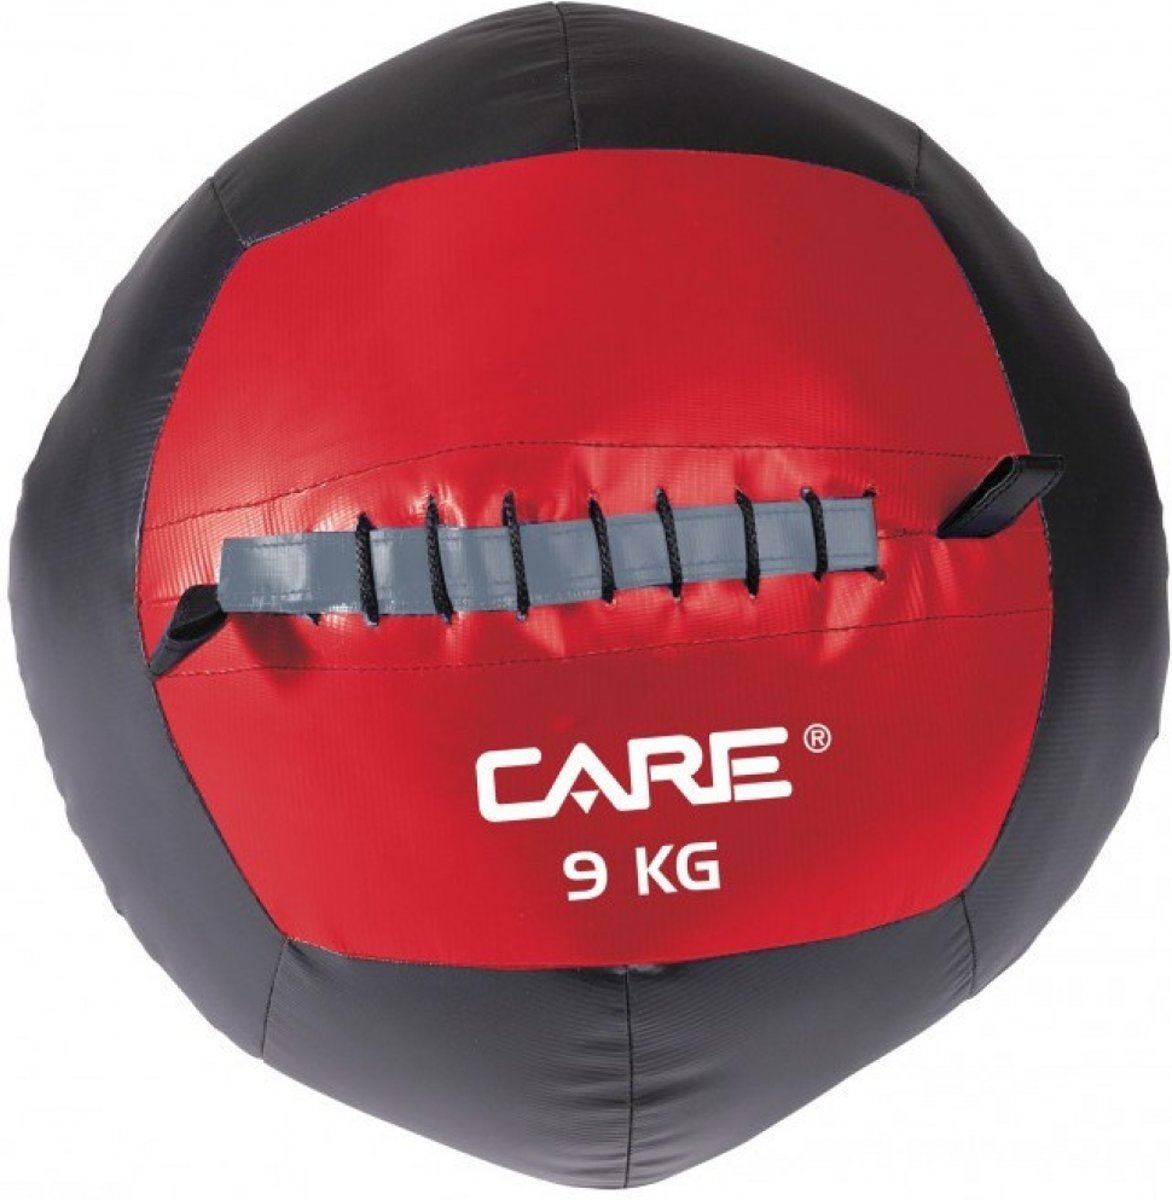 Care Fitness - Wallball 9 Kg - Functional Fitness - Rood/zwart